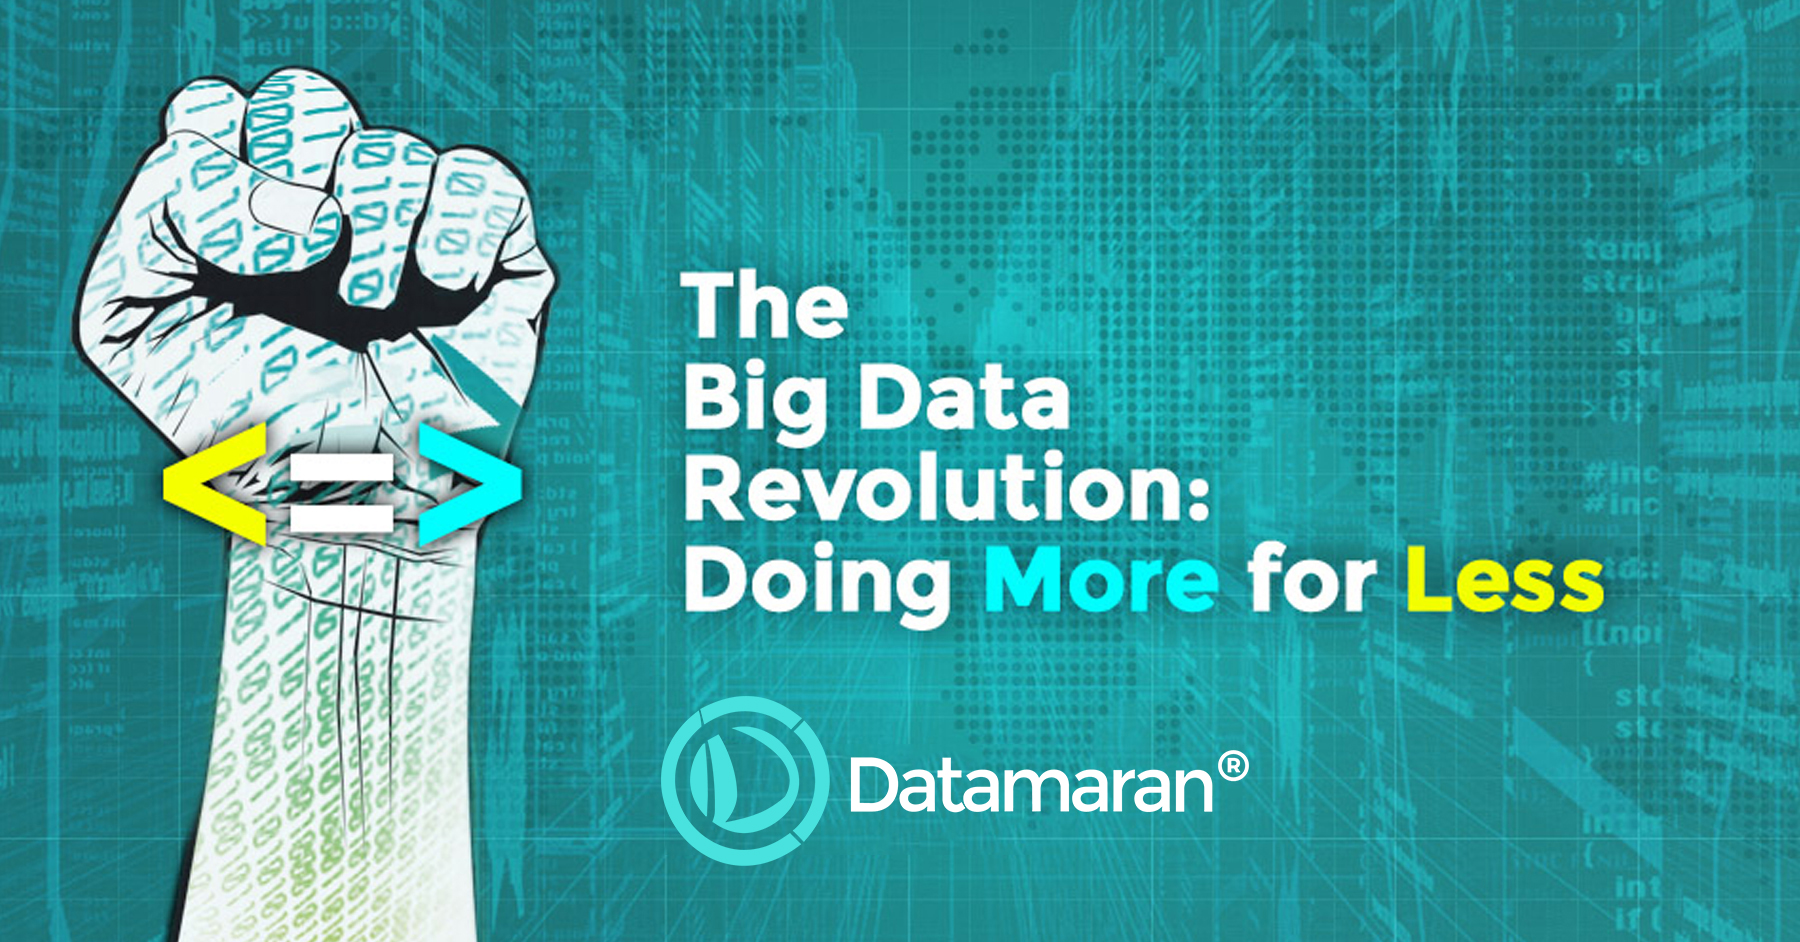 The Big Data Revolution: Doing More for Less